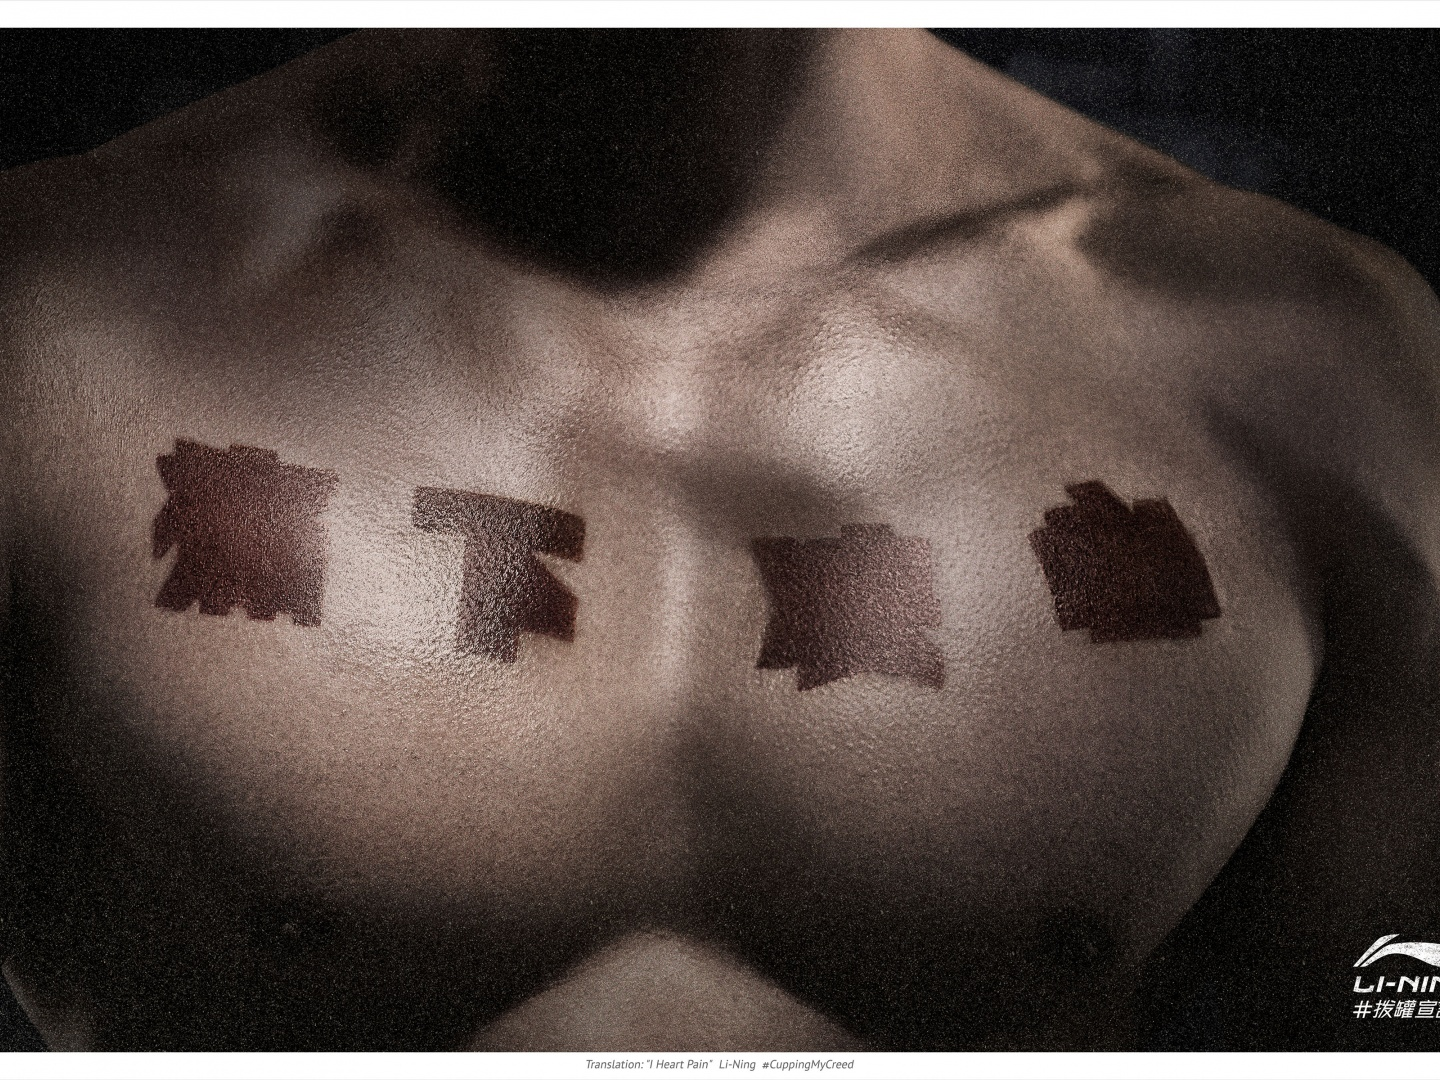 Image for #CuppingMyCreed - I Heart Pain